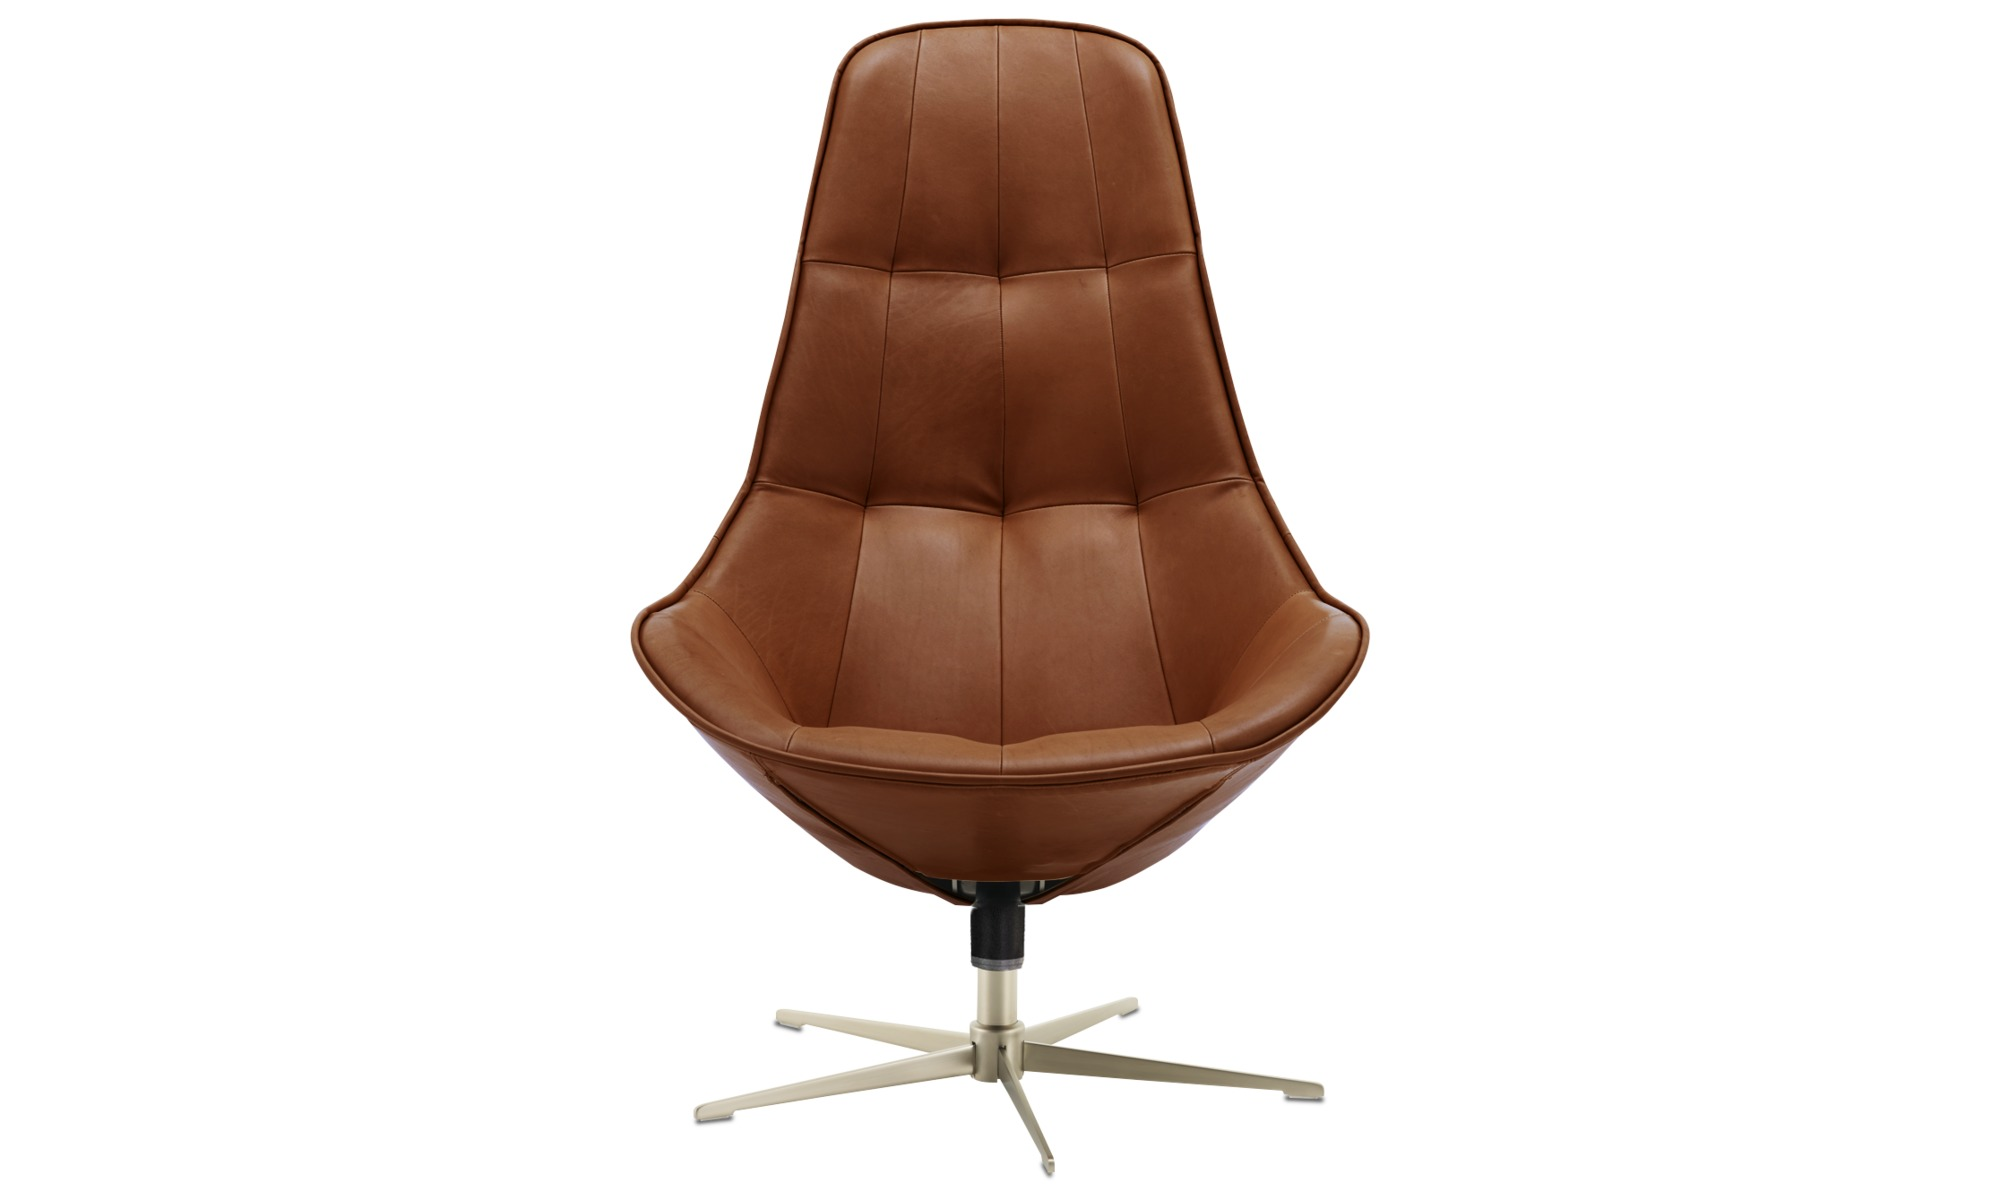 Sessel Boston Sessel Mit Dreh Und Kippfunktion Boconcept - Sessel Mit Kippfunktion